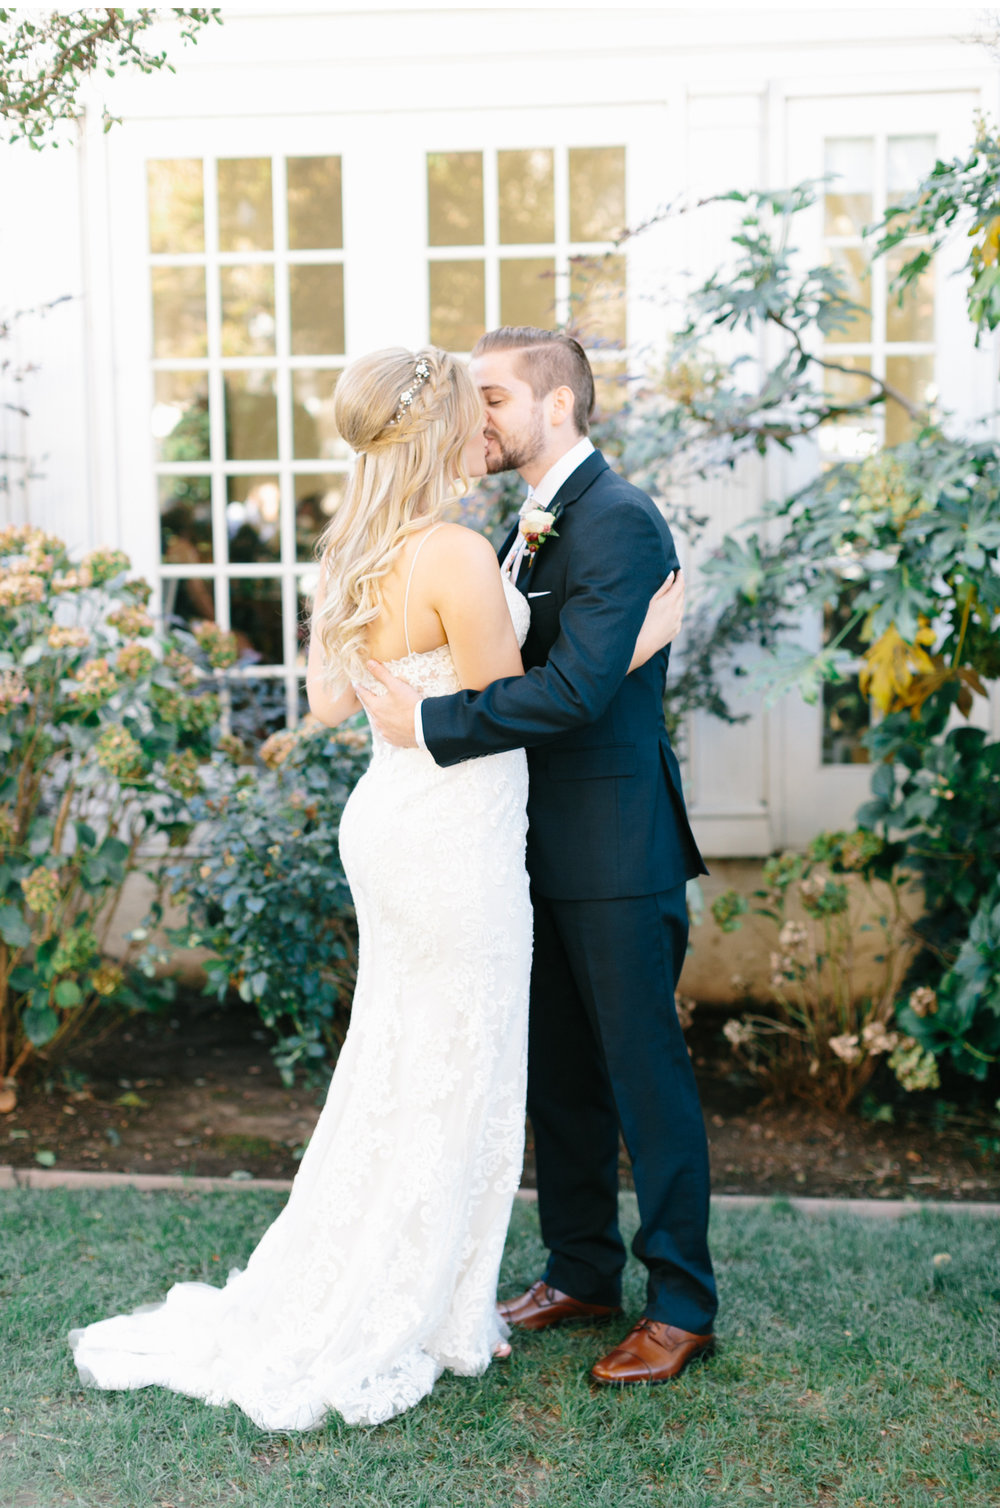 Malibu-Wedding-Photographer-Natalie-Schutt-Photography-Vizcaya_04.jpg